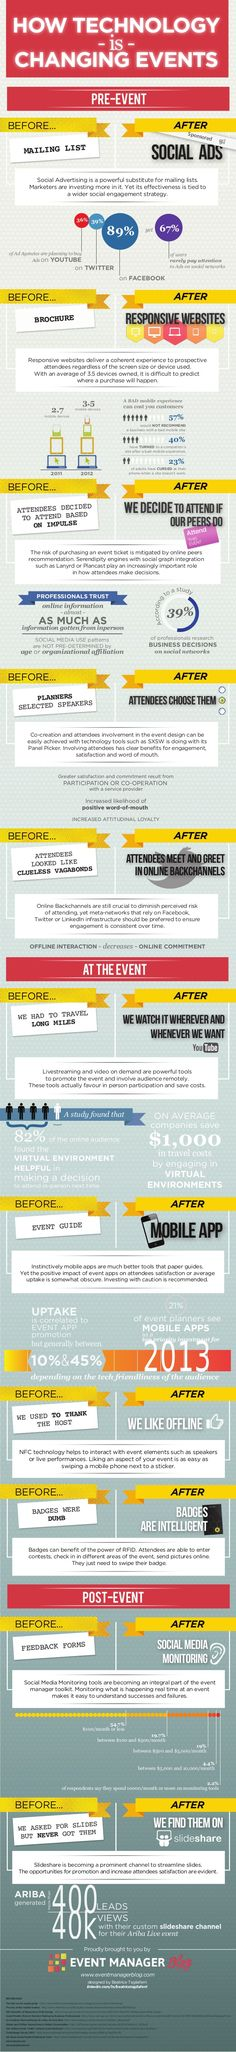 Event Technology Infographic by Julius Solaris via slideshare